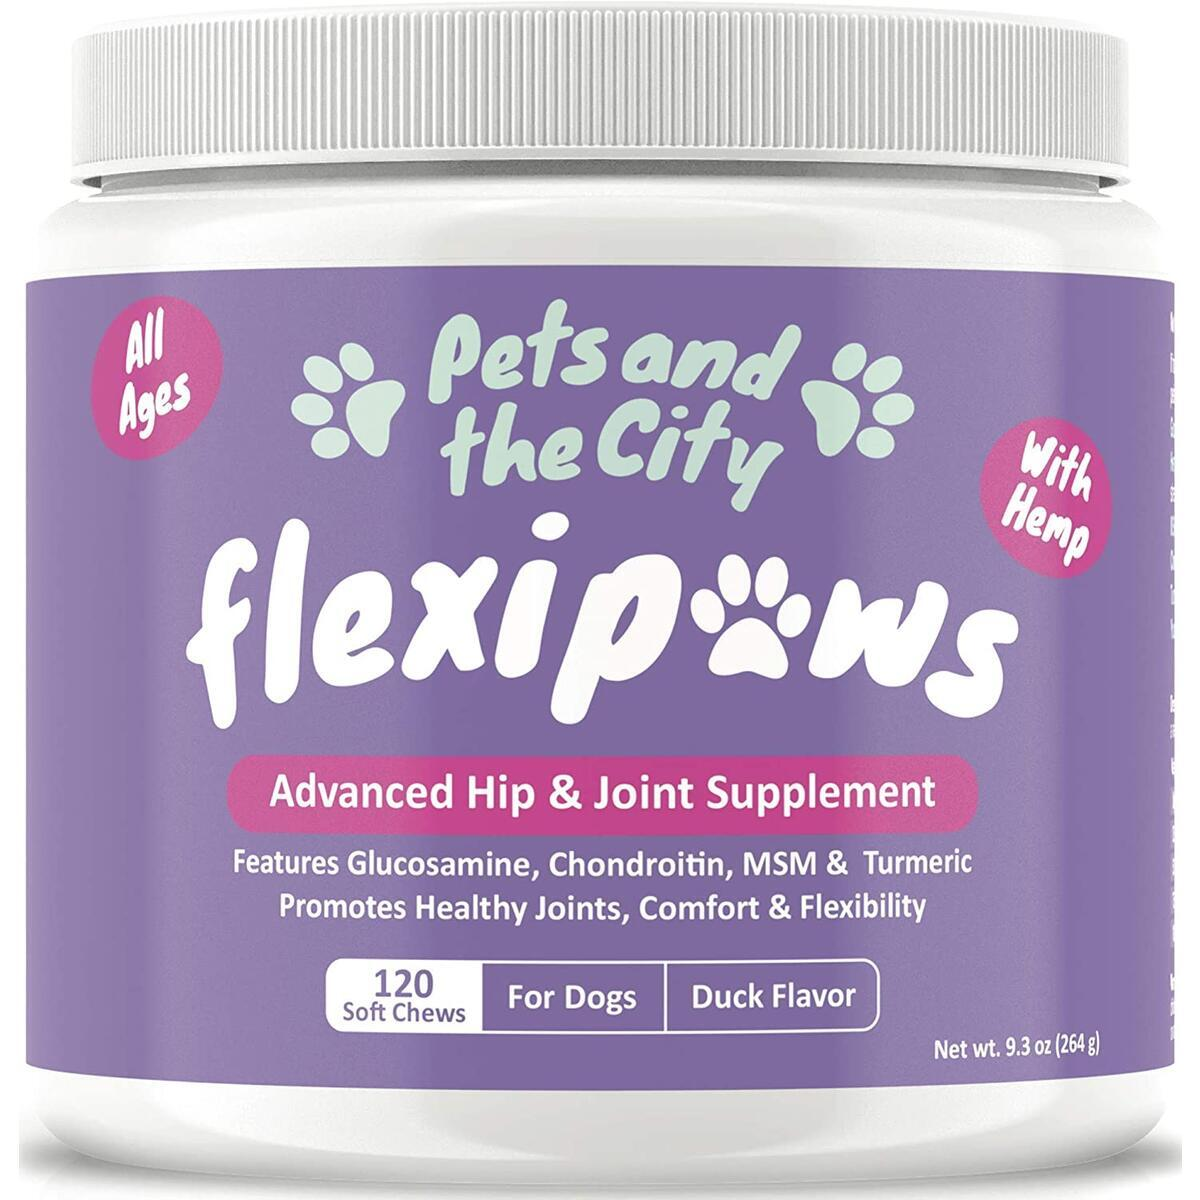 Glucosamine for Dogs - Hip & Joint Supplement with Hemp Oil, Omega 3, Vitamins, MSM, Chondroitin, Turmeric & Yucca - Mobility & Energy - Joint & Arthritis Pain Relief - 120 Duck Flavor Treats